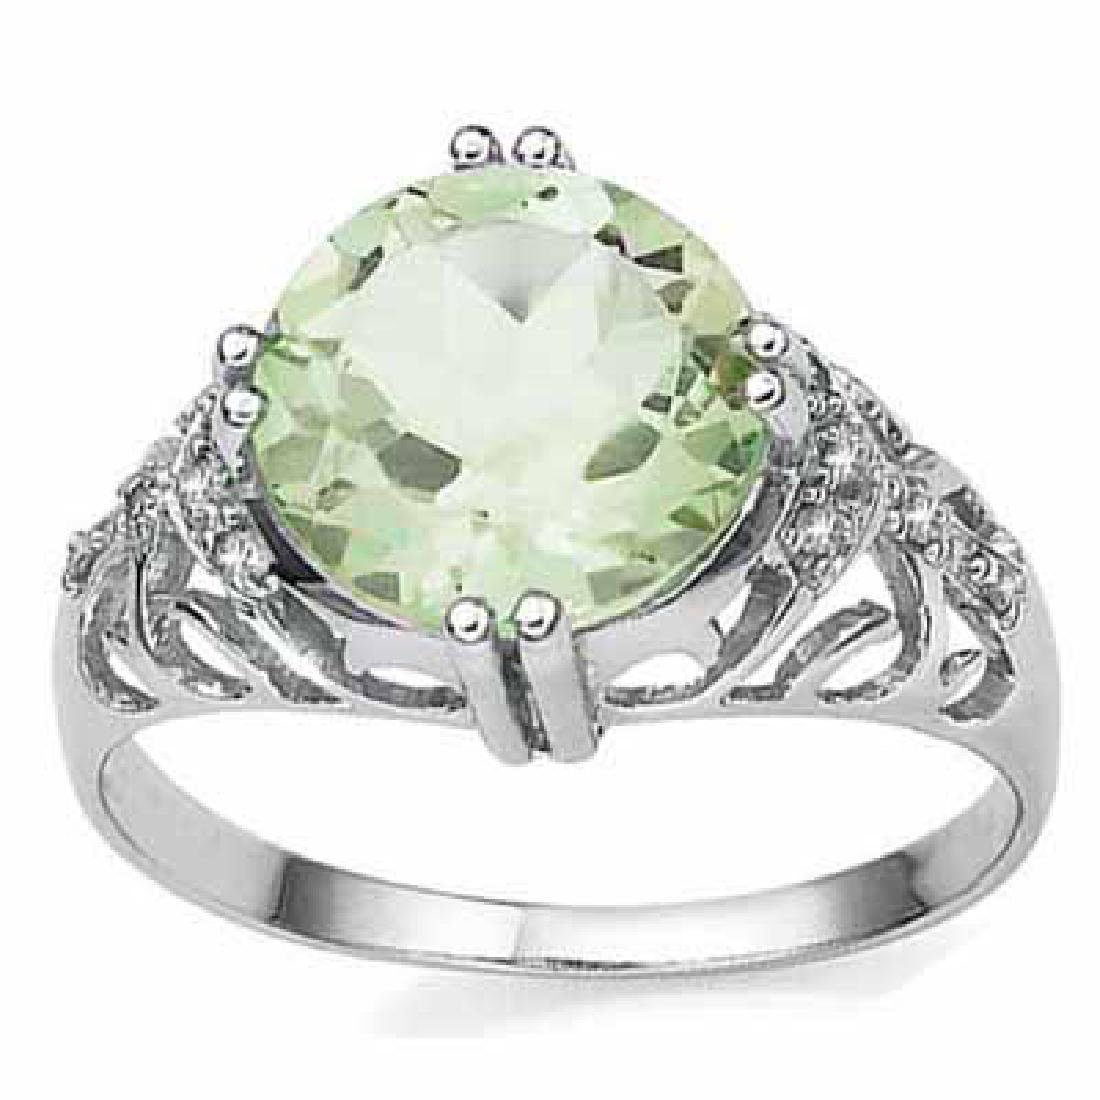 2.599 CARAT TW (3 PCS) GREEN AMETHYST & GENUINE DIAMOND